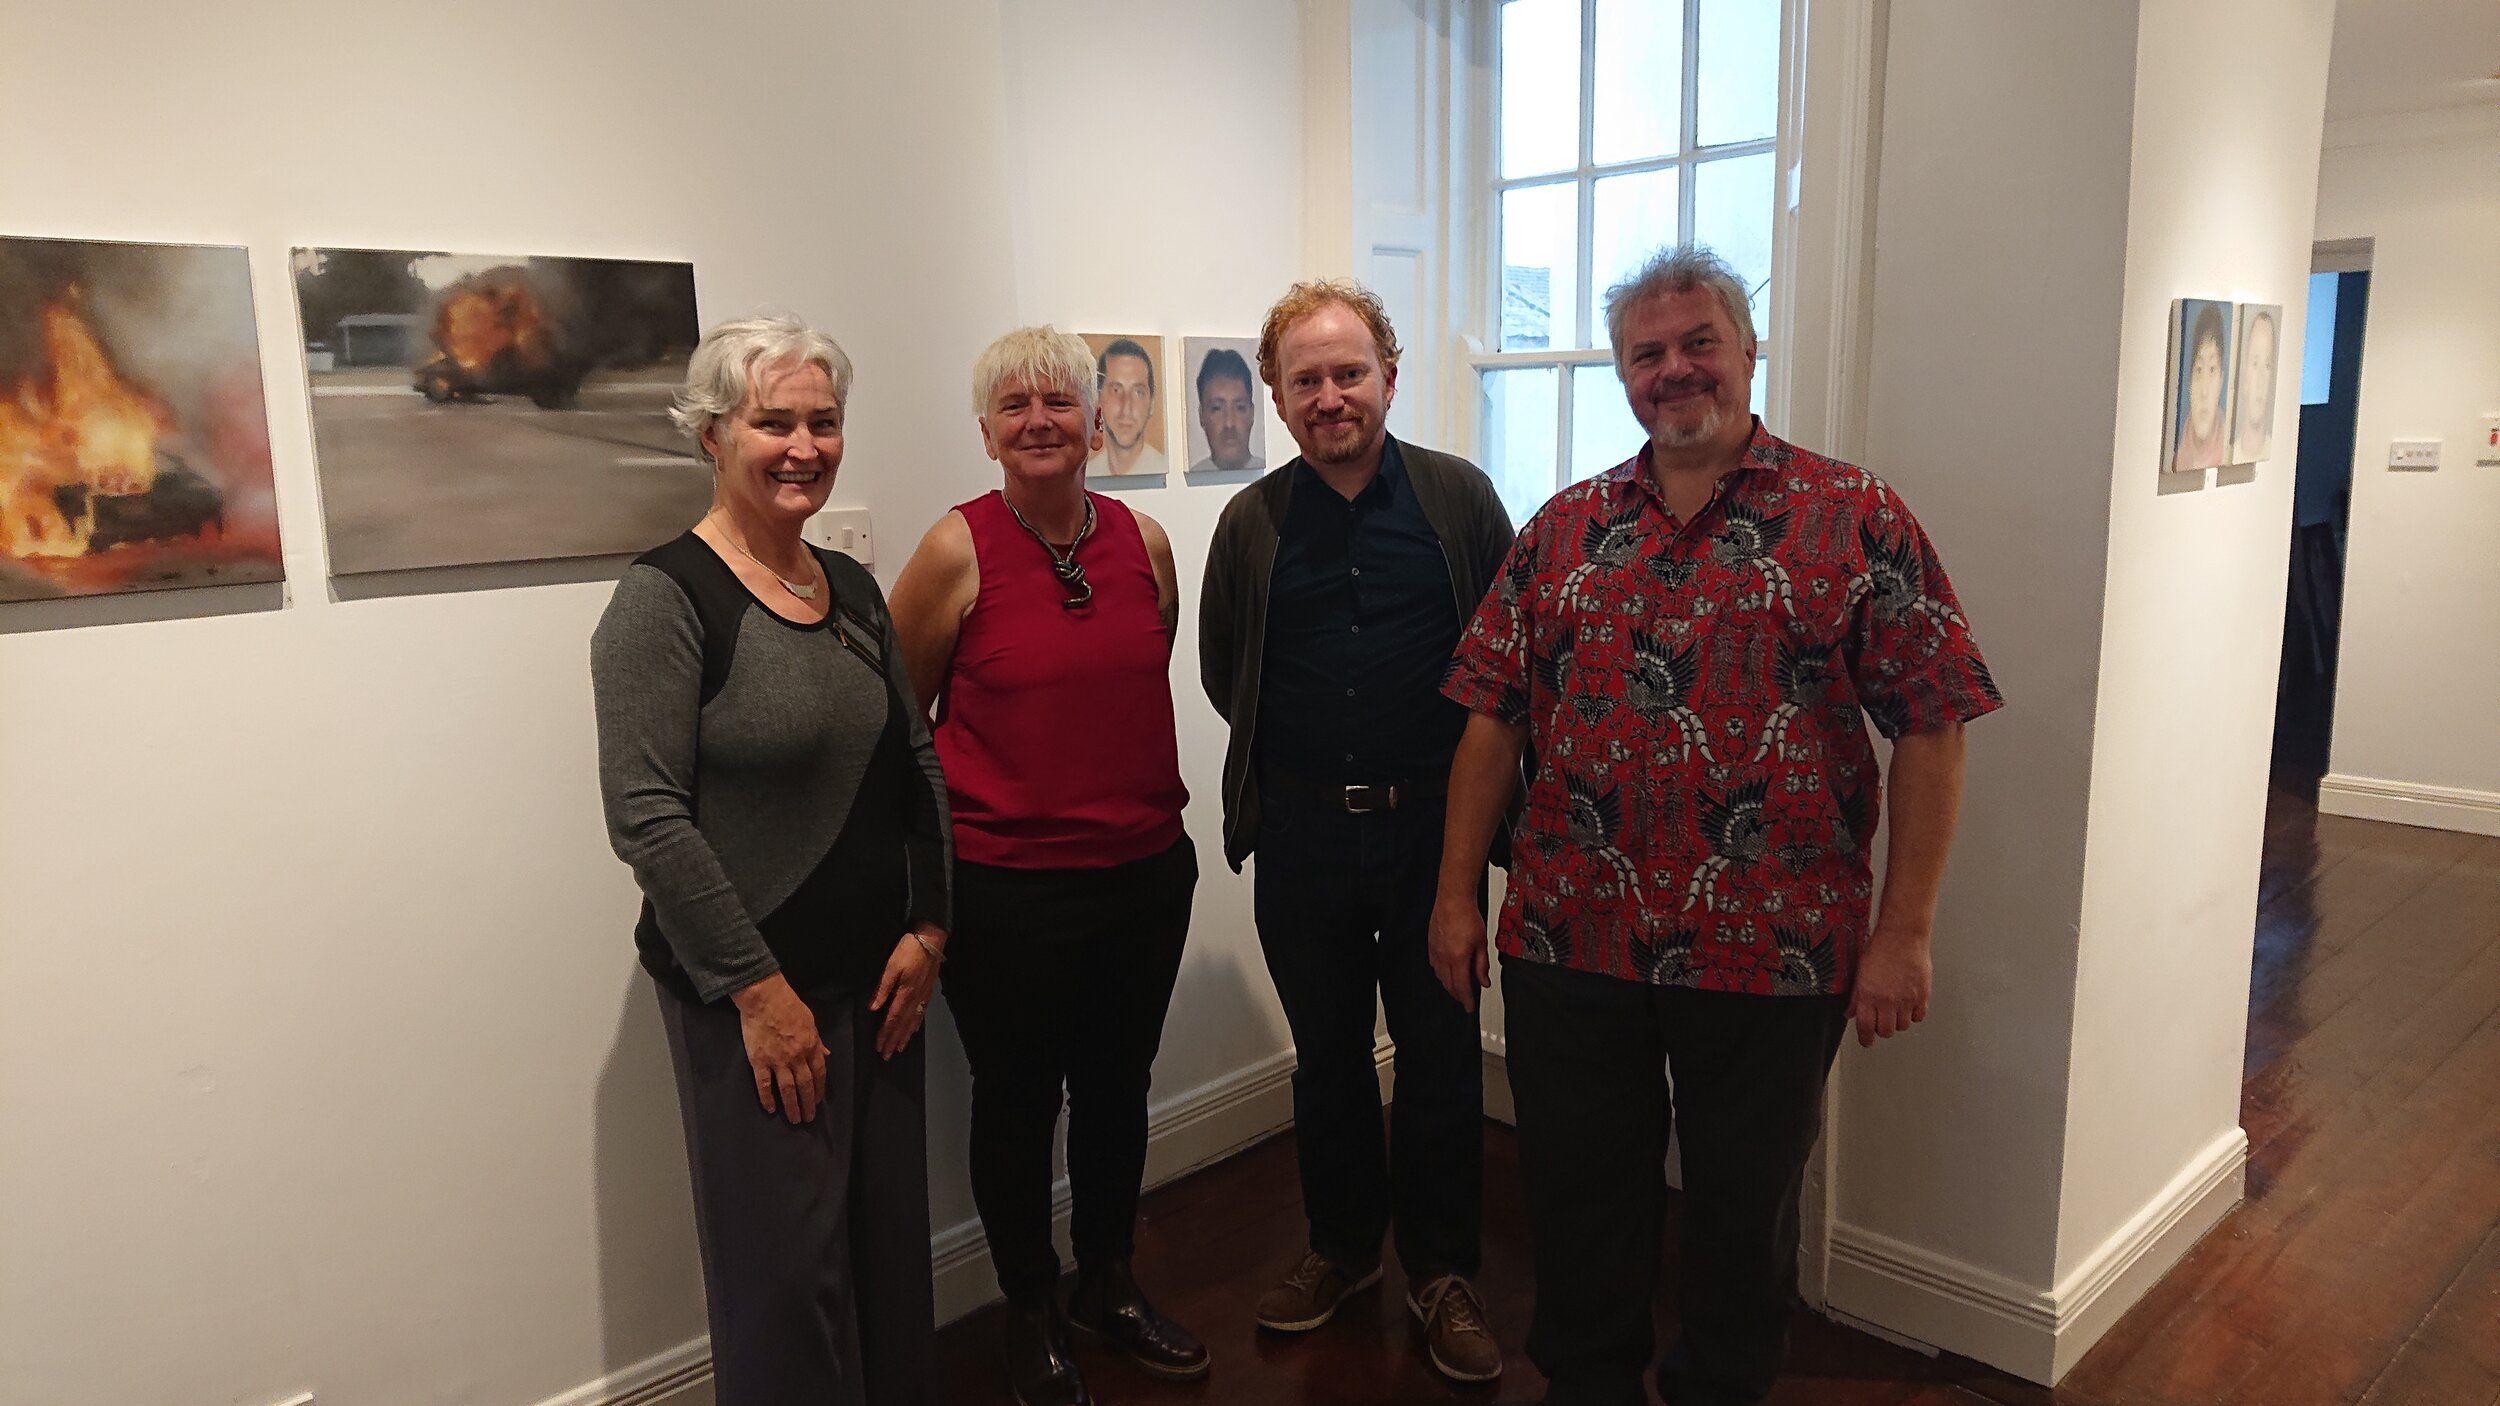 Martina Hamilton, Breda Burns, Cormac O'Leary and Ian Wieczoreck on the opening night of Blurred Visions and Fractured Edge.